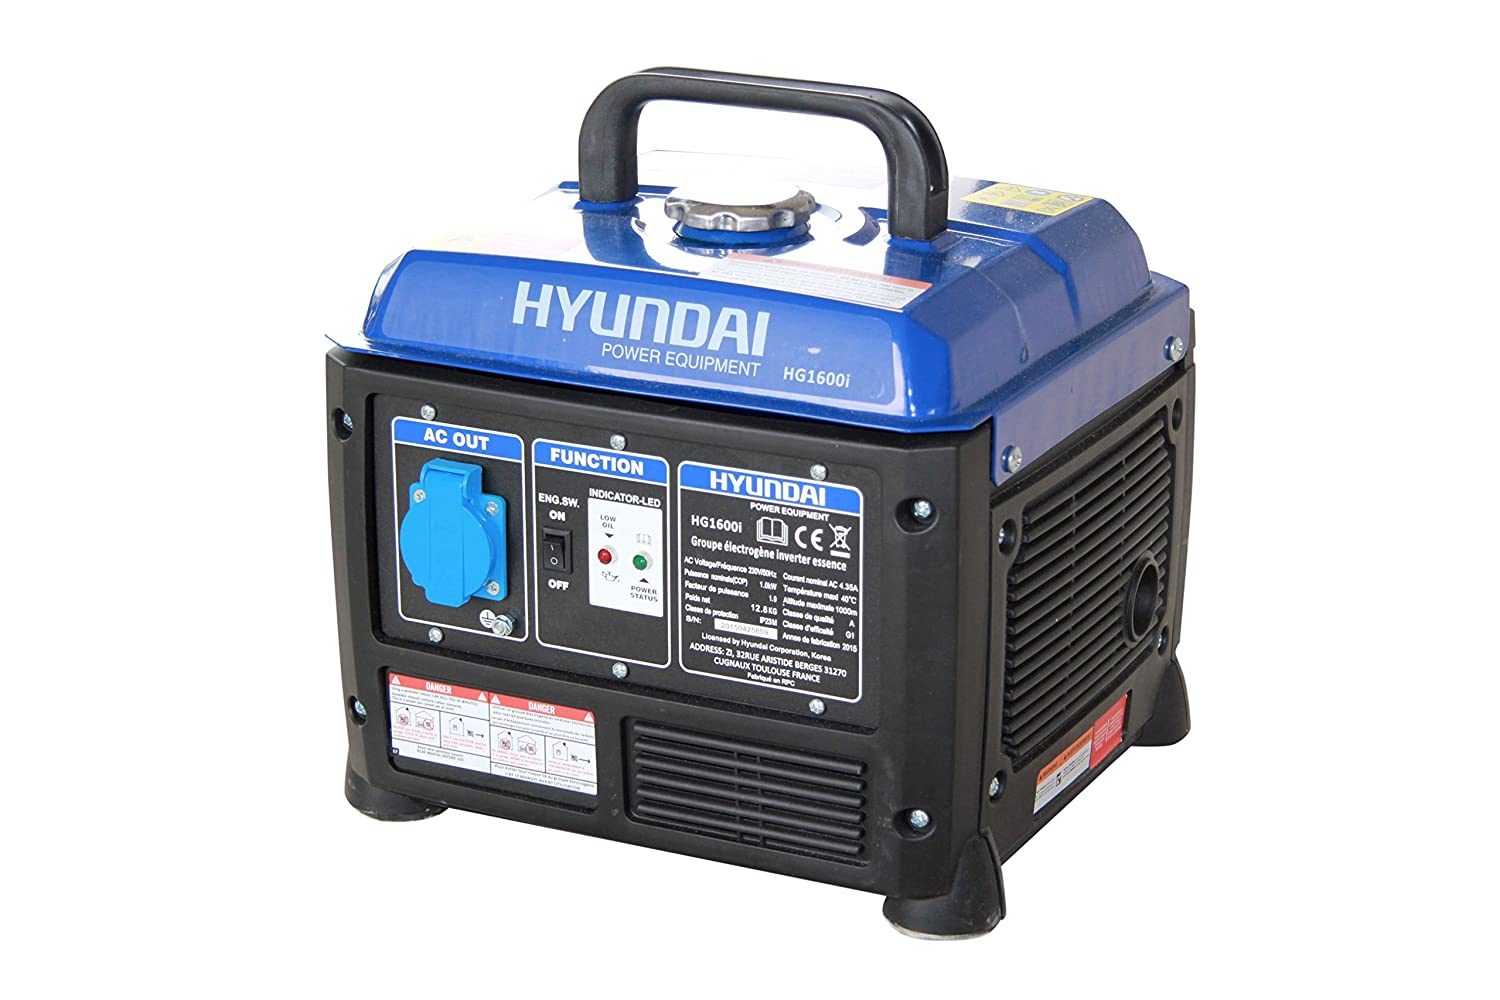 hyundai hg1600i groupe lectrog ne inverter 1200 w ebay. Black Bedroom Furniture Sets. Home Design Ideas